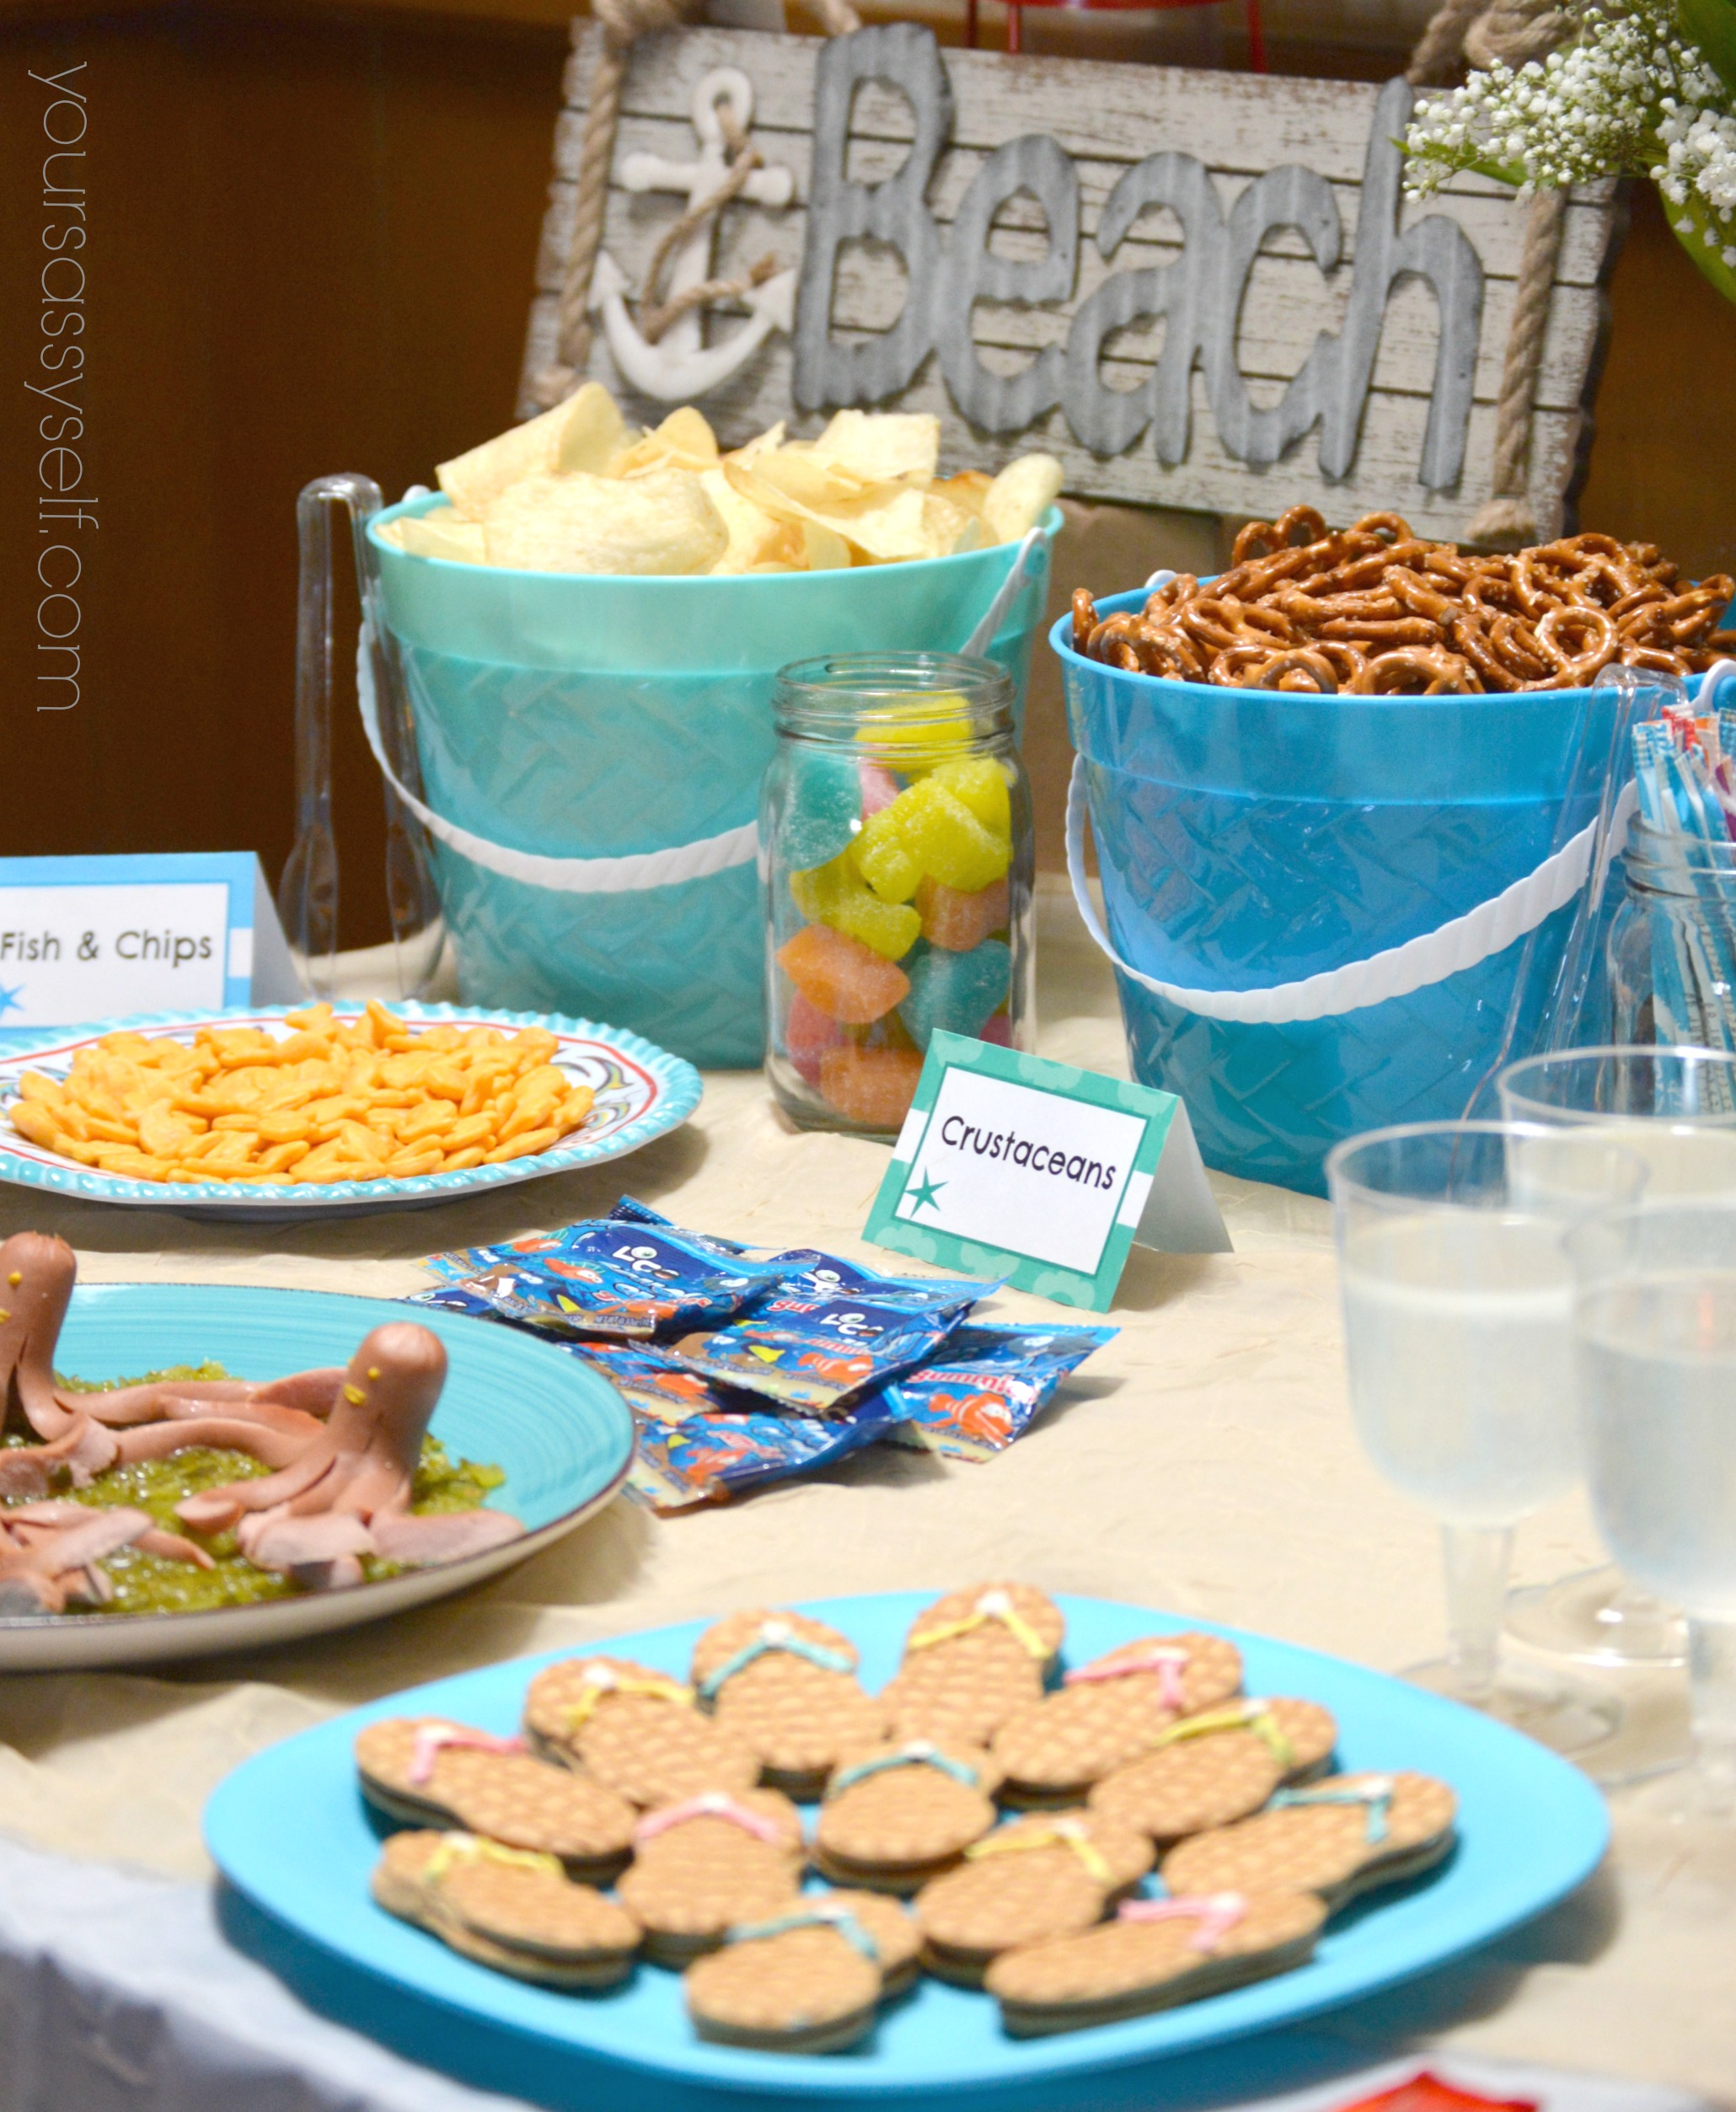 Classy 8 Year S Any Age Your Sassy Self Beach Party Ideas Birthday Beach Party Ideas Any Age Birthday Beach Party Ideas Seniors Beach Party Ideas ideas Beach Party Ideas